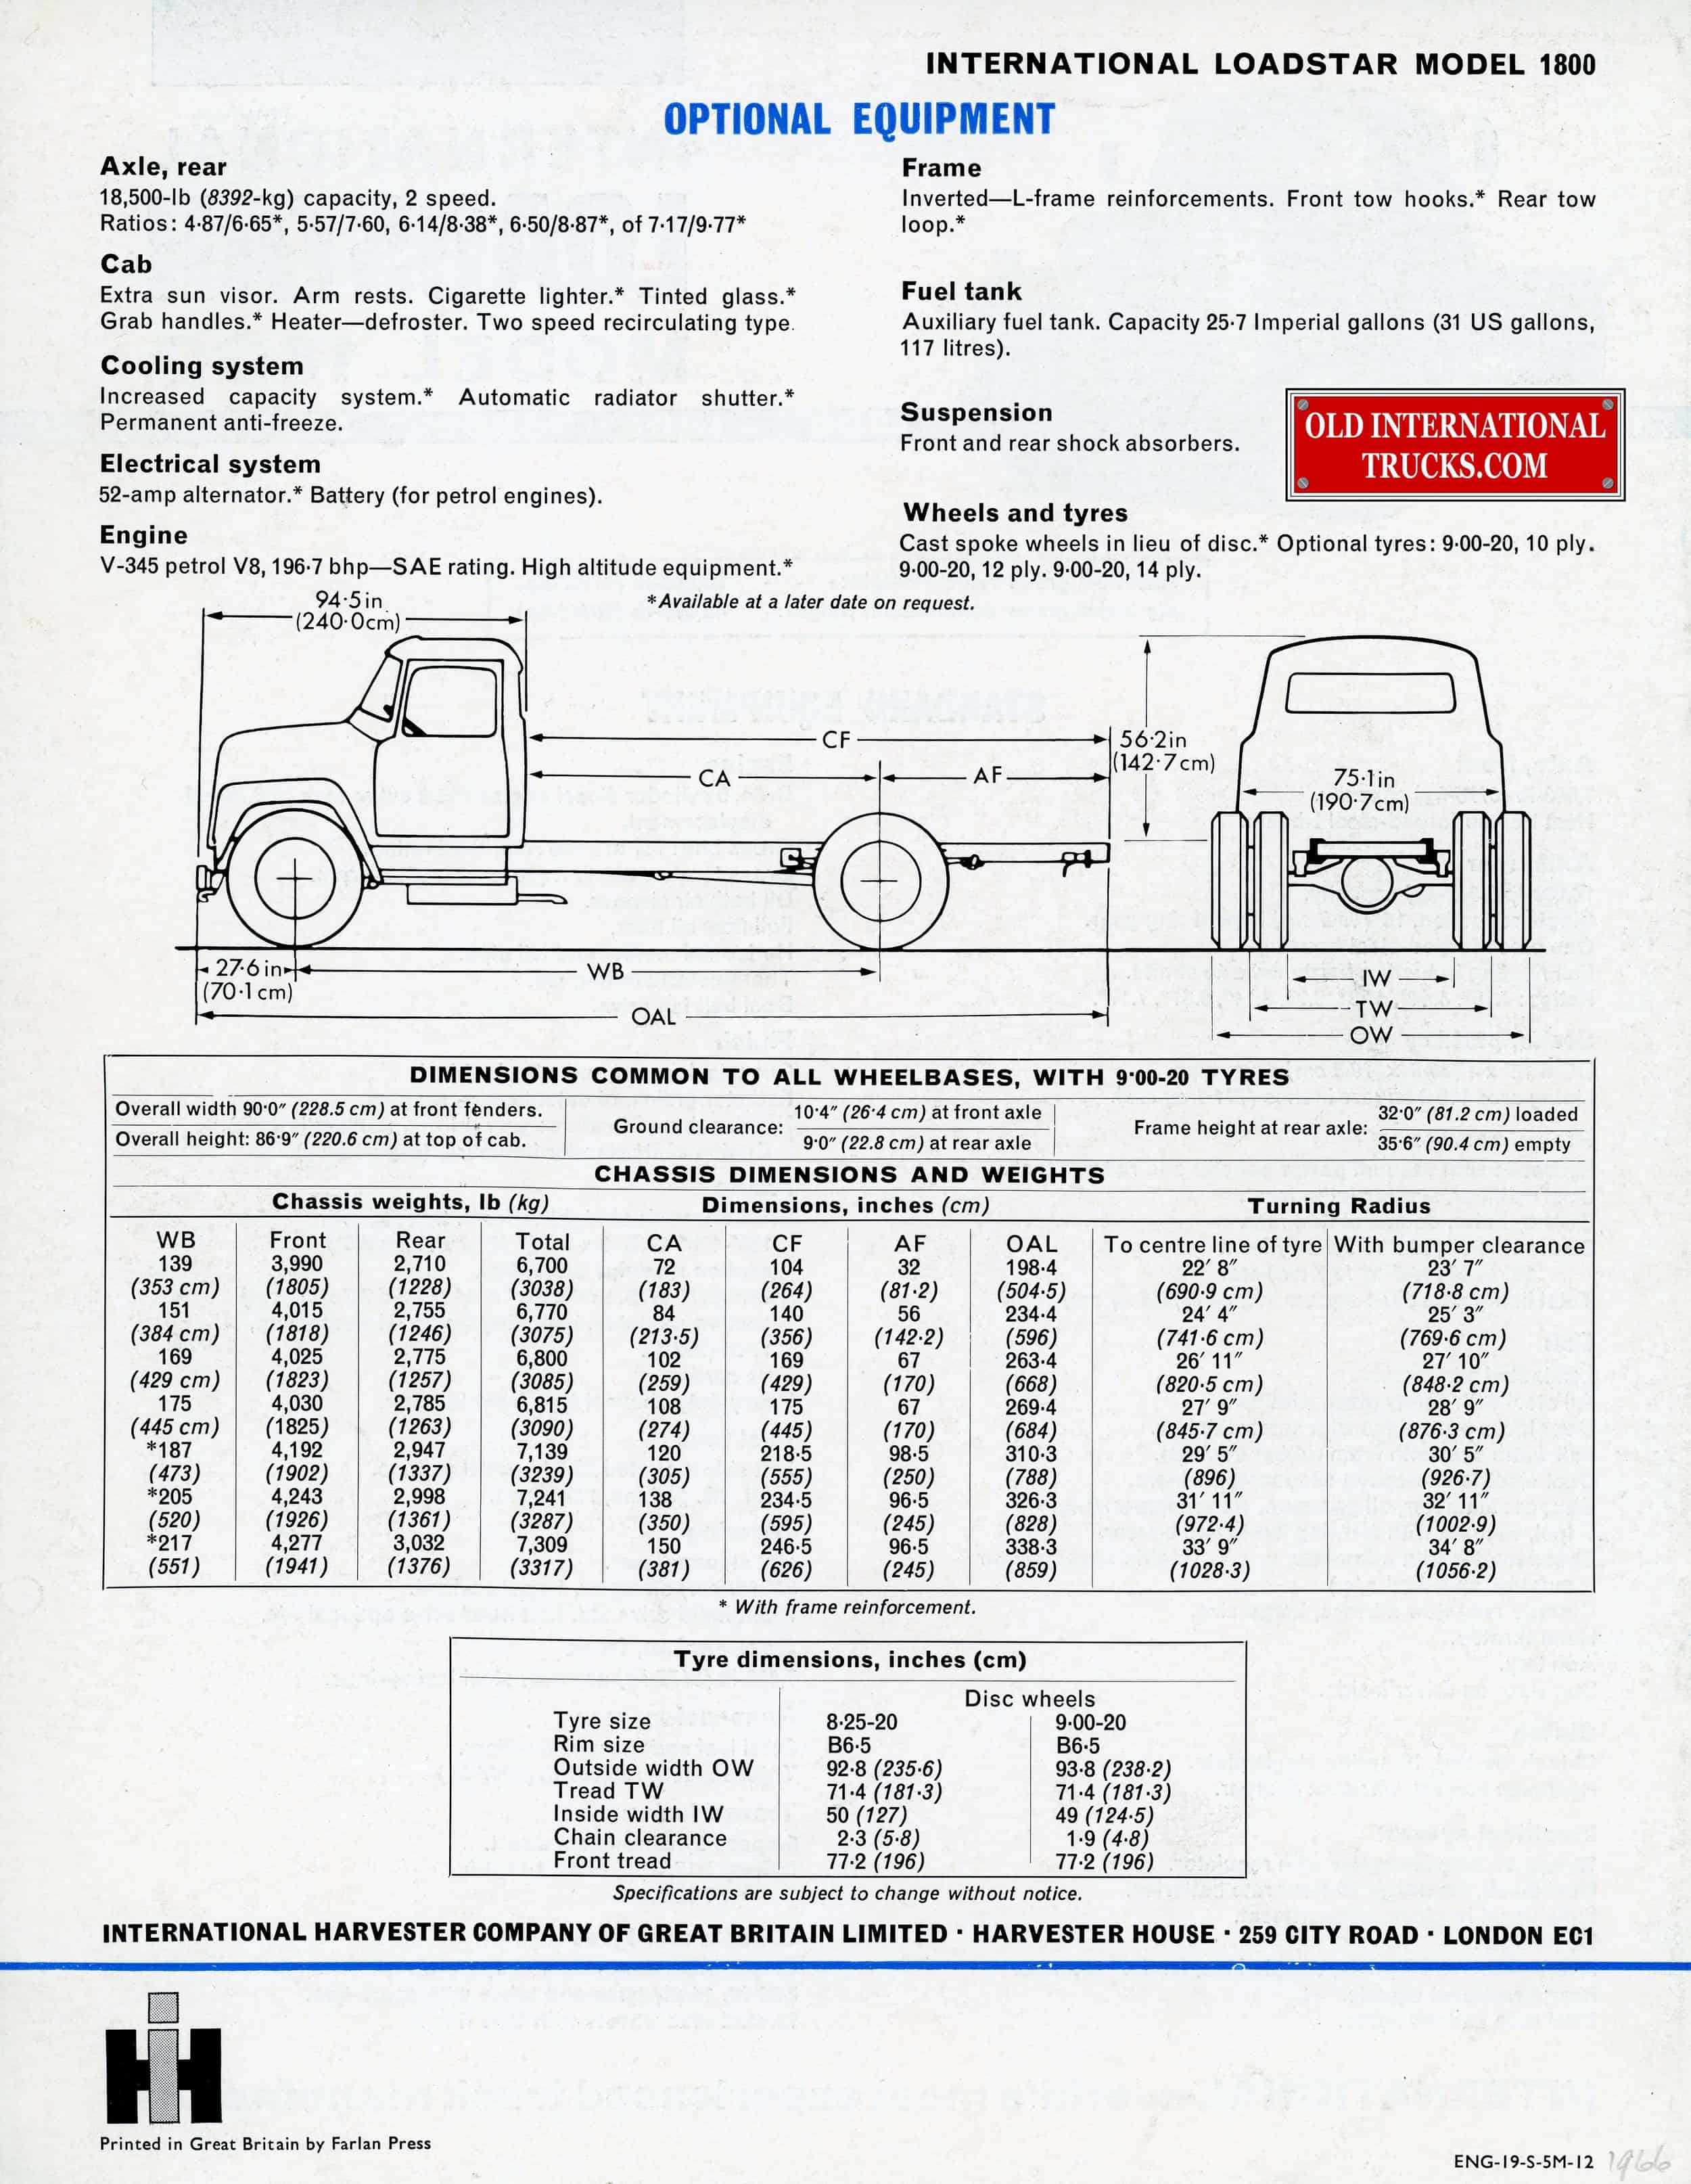 Old International Ads From The Loadstar Old